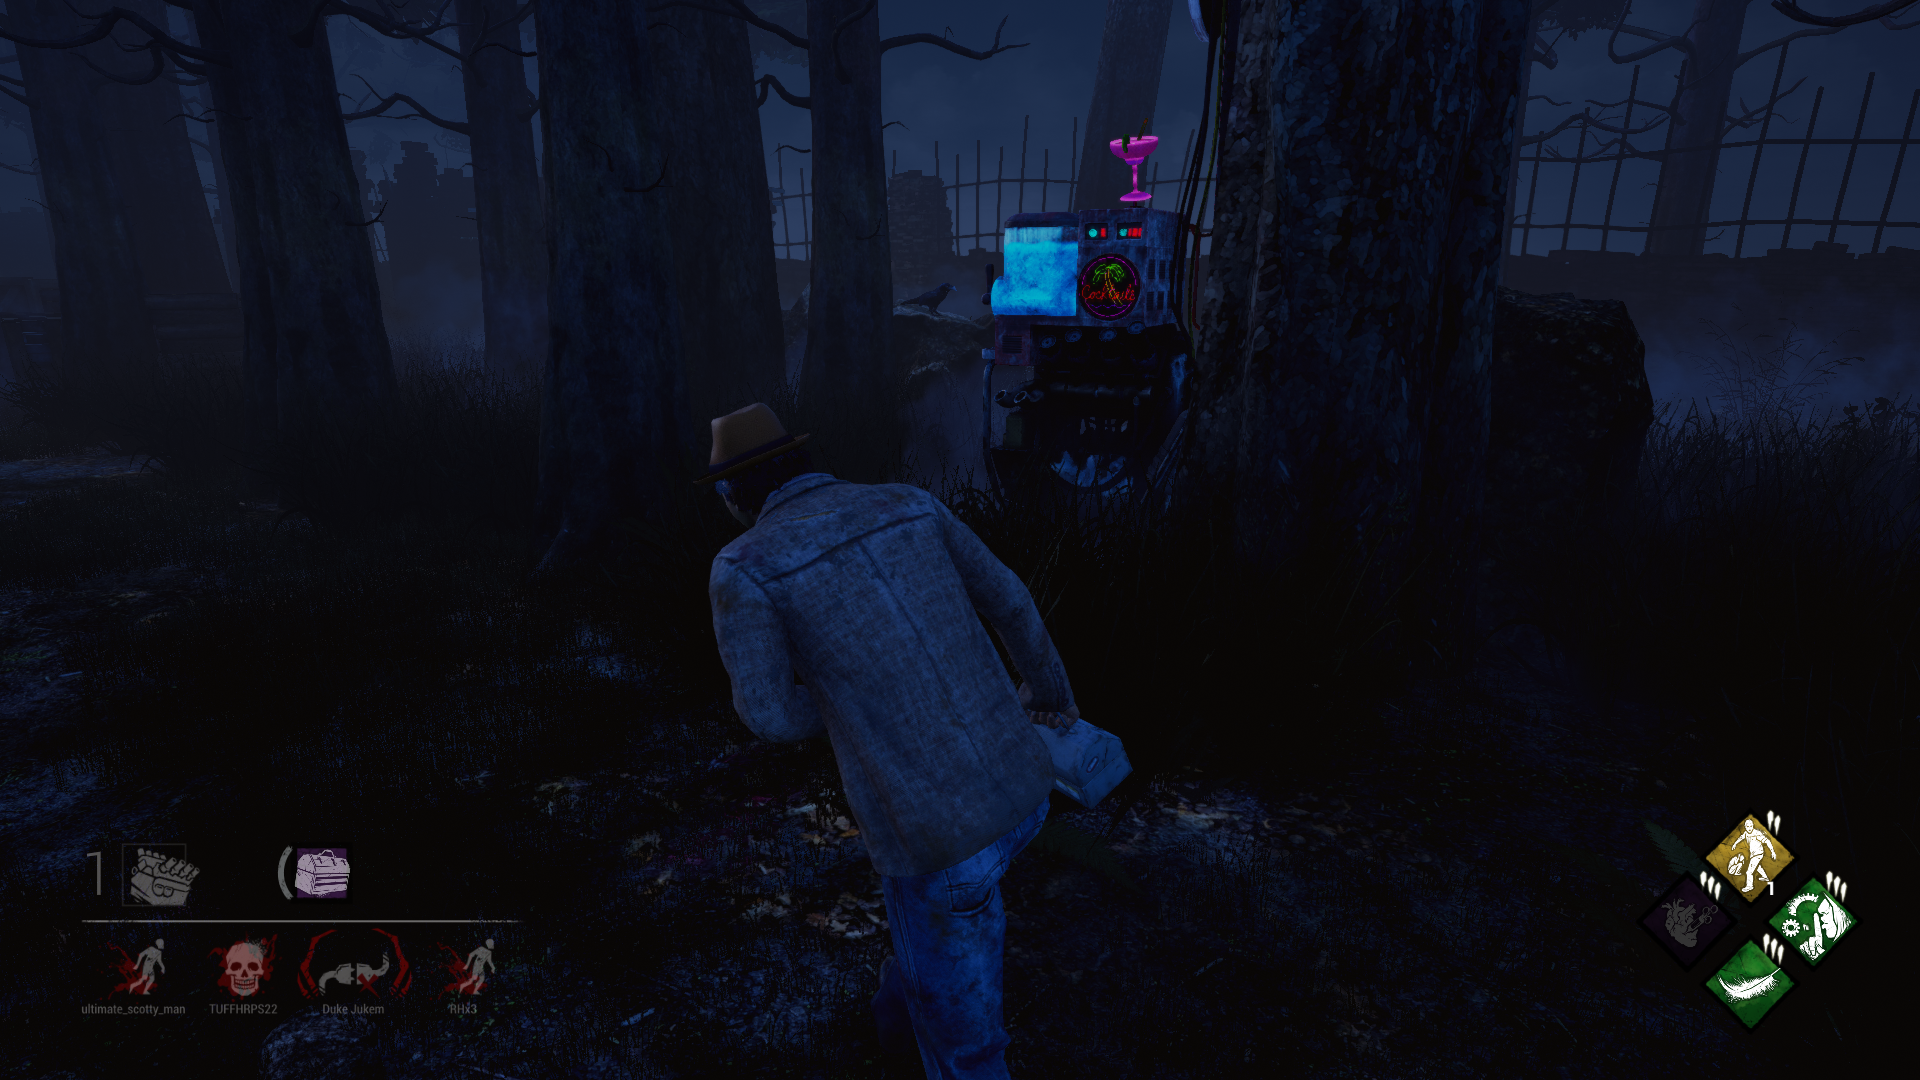 Game freezes — Dead By Daylight